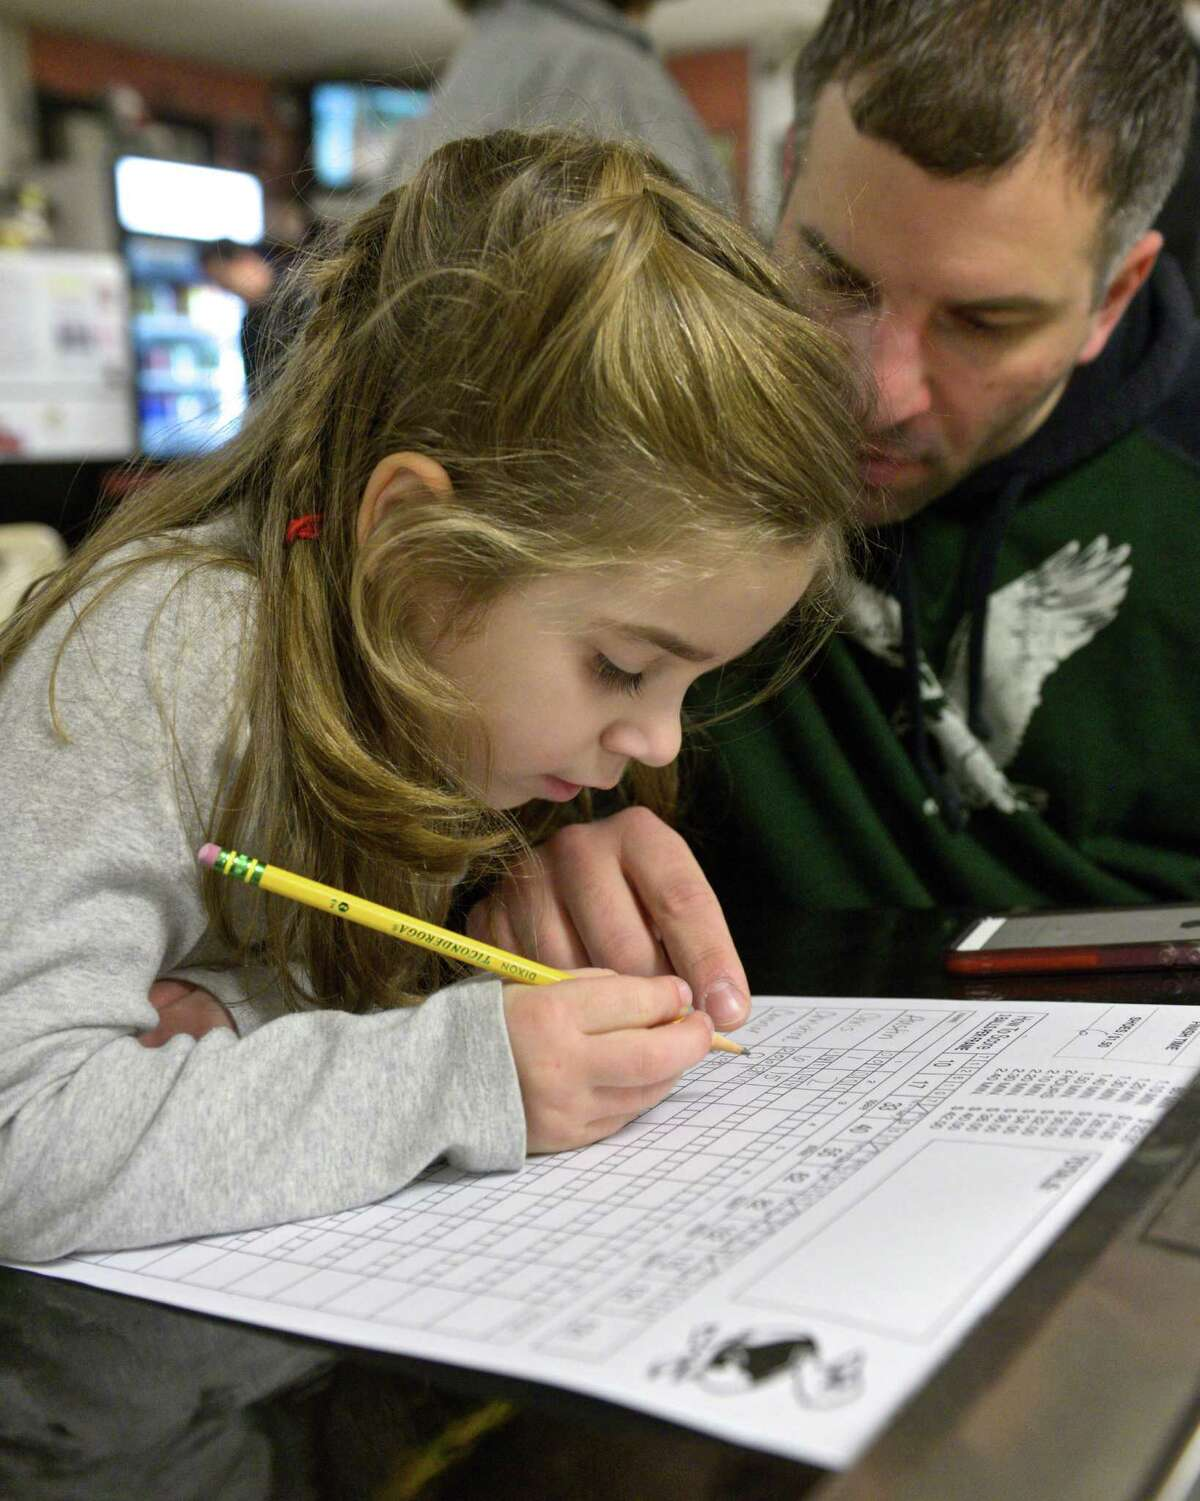 Olivia Caridi, 5, of Brookfield, learns how to keep score in duckpin bowling under the watchful eye of her dad, Chris Caridi during a family outing to Danbury Lanes, one of fifty five or so duck pin bowling lanes left in the United States. The lanes have been on East Hayestown Road since the 1940's. Saturday, December 27, 2014, Danbury, Conn.